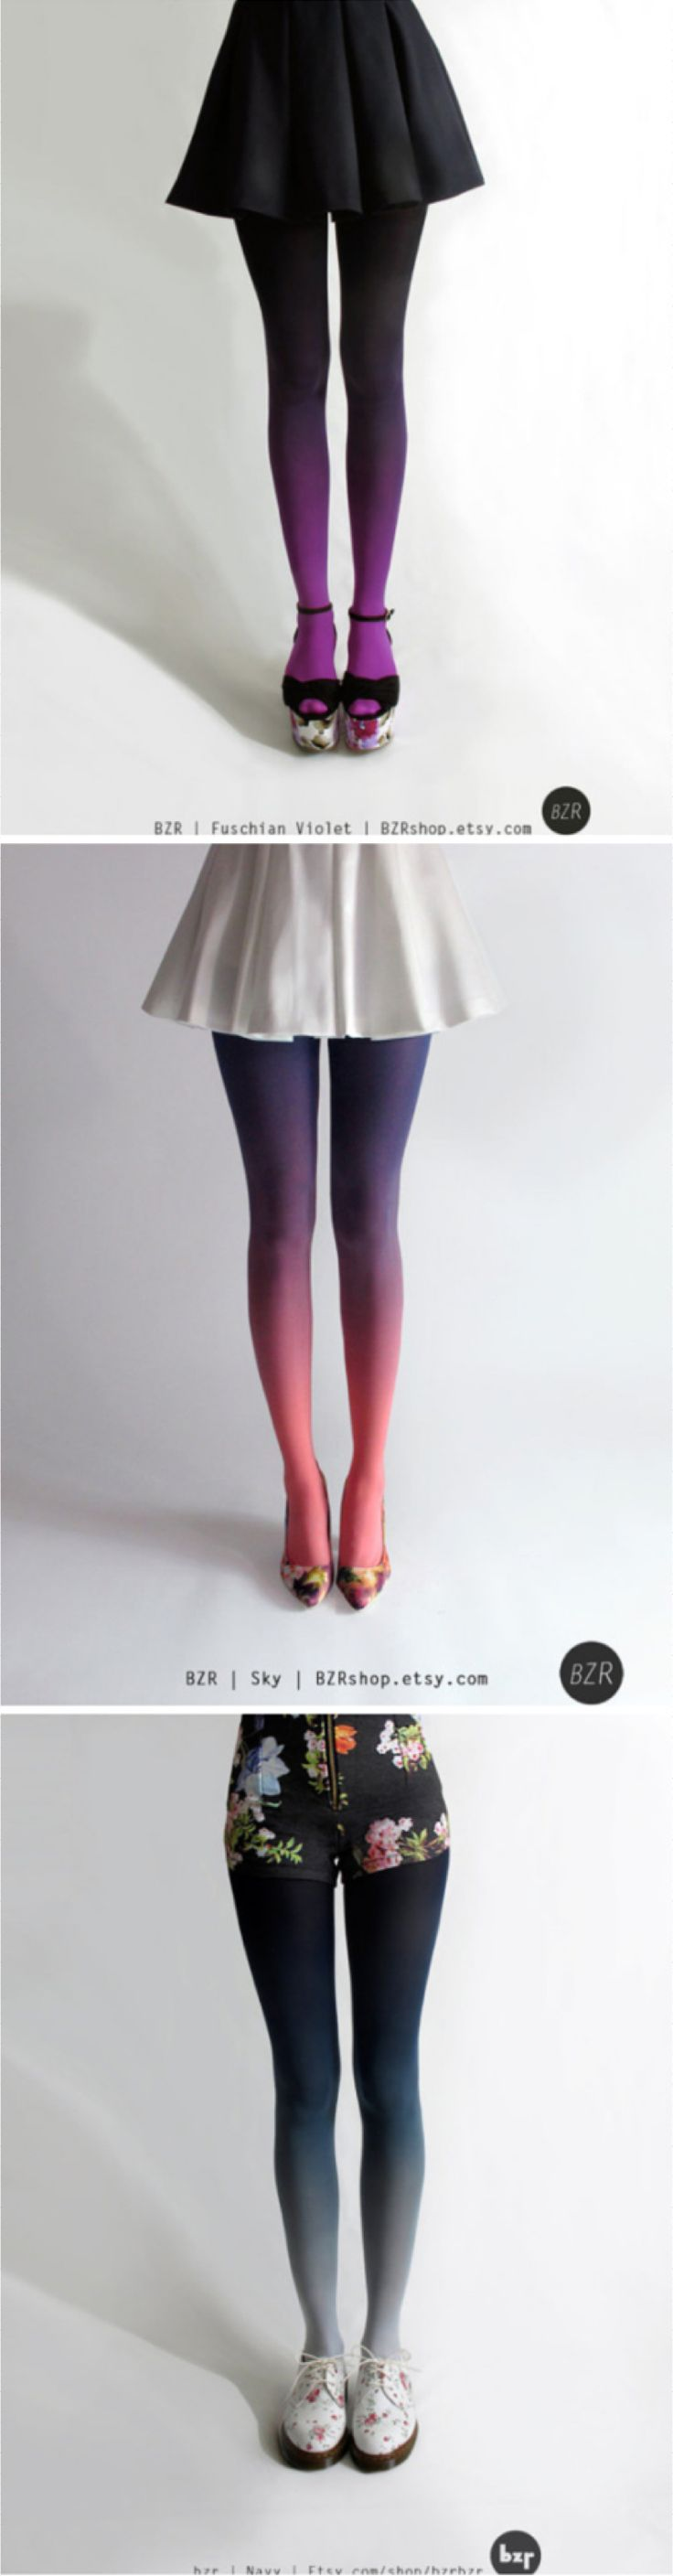 Vibrant Hand-Dyed Ombre Tights by Tiffany Ju